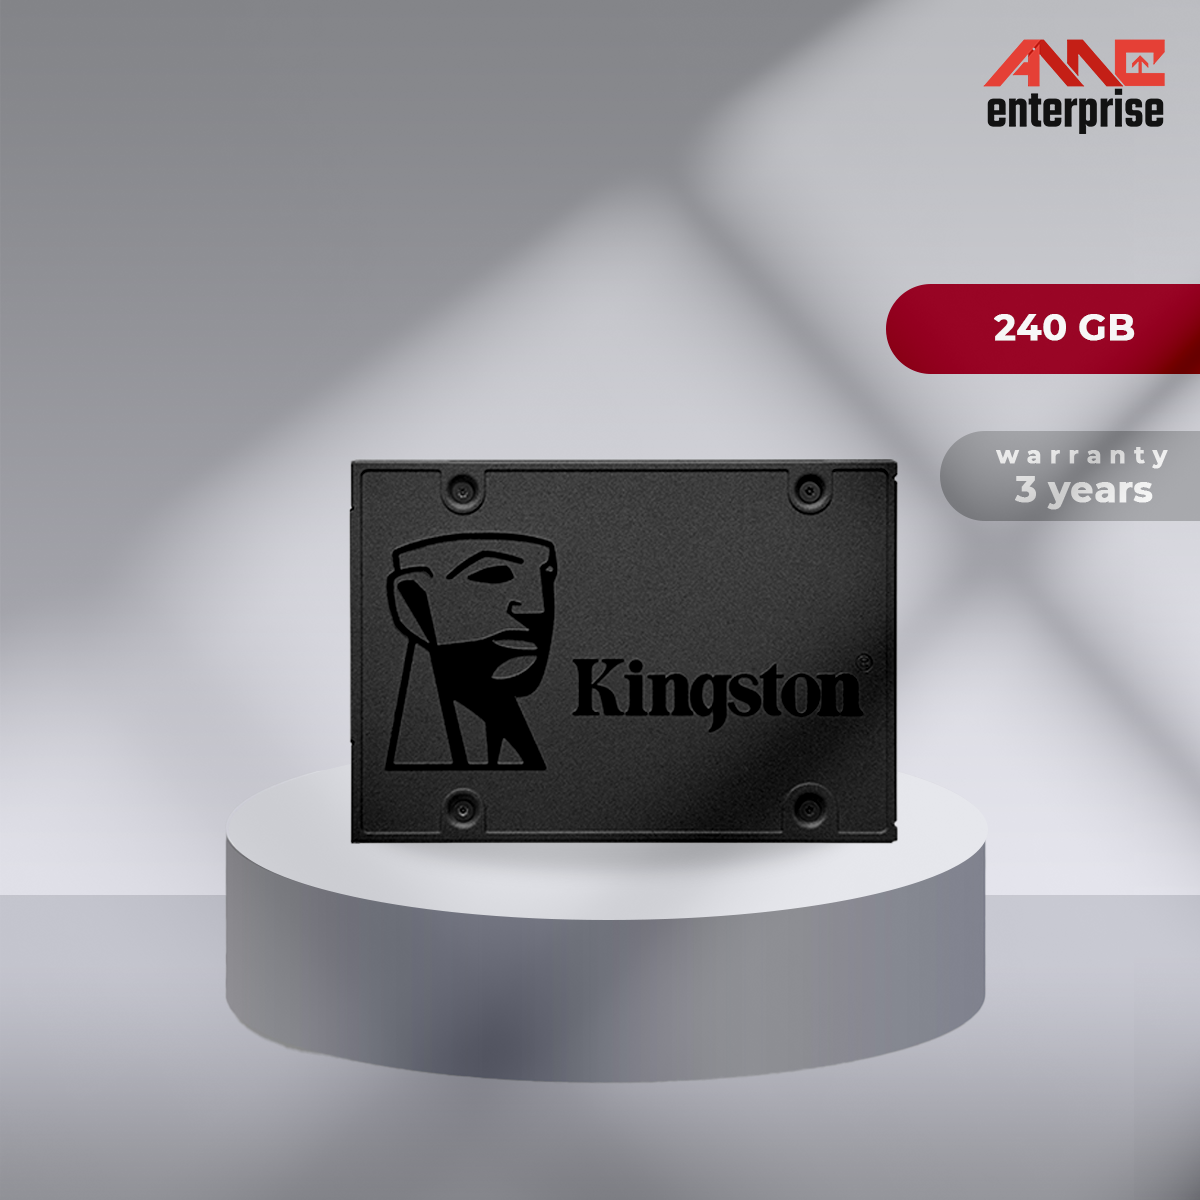 KINGSTON A400 SOLID STATE DRIVE 240GB (4).png